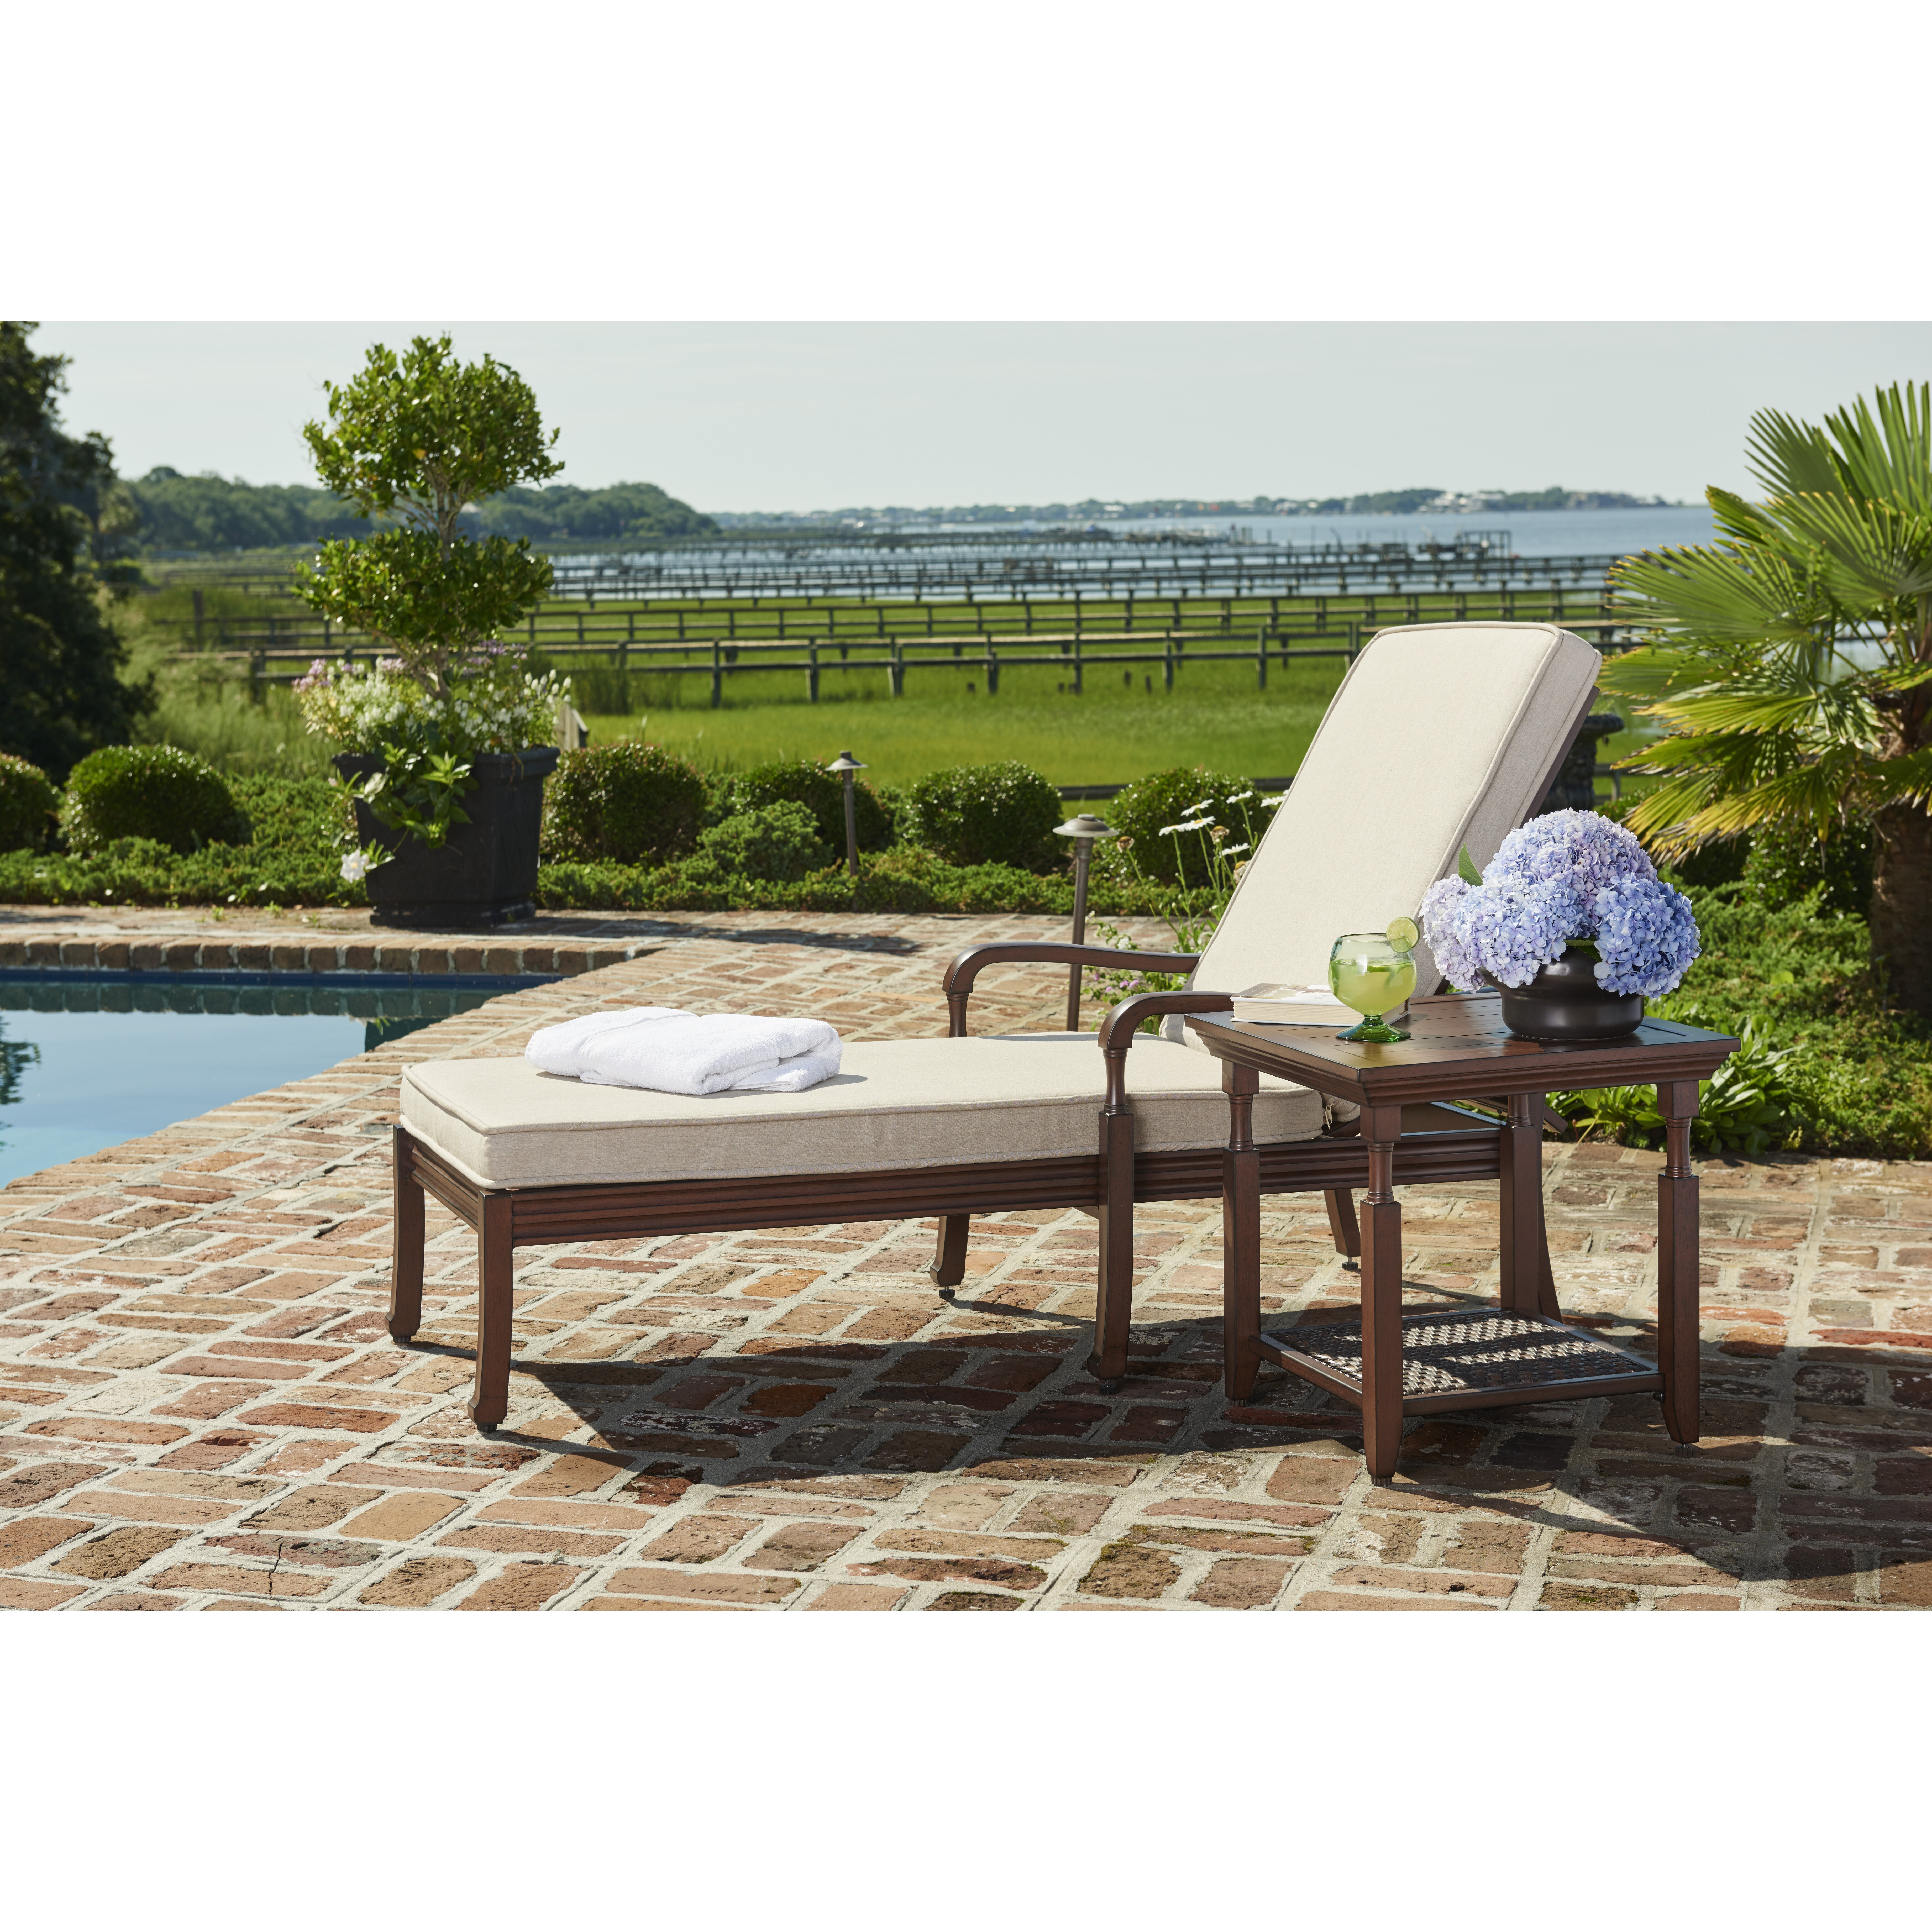 Sunvilla river house chaise lounge with cushion wayfair - Chaise a housser ...